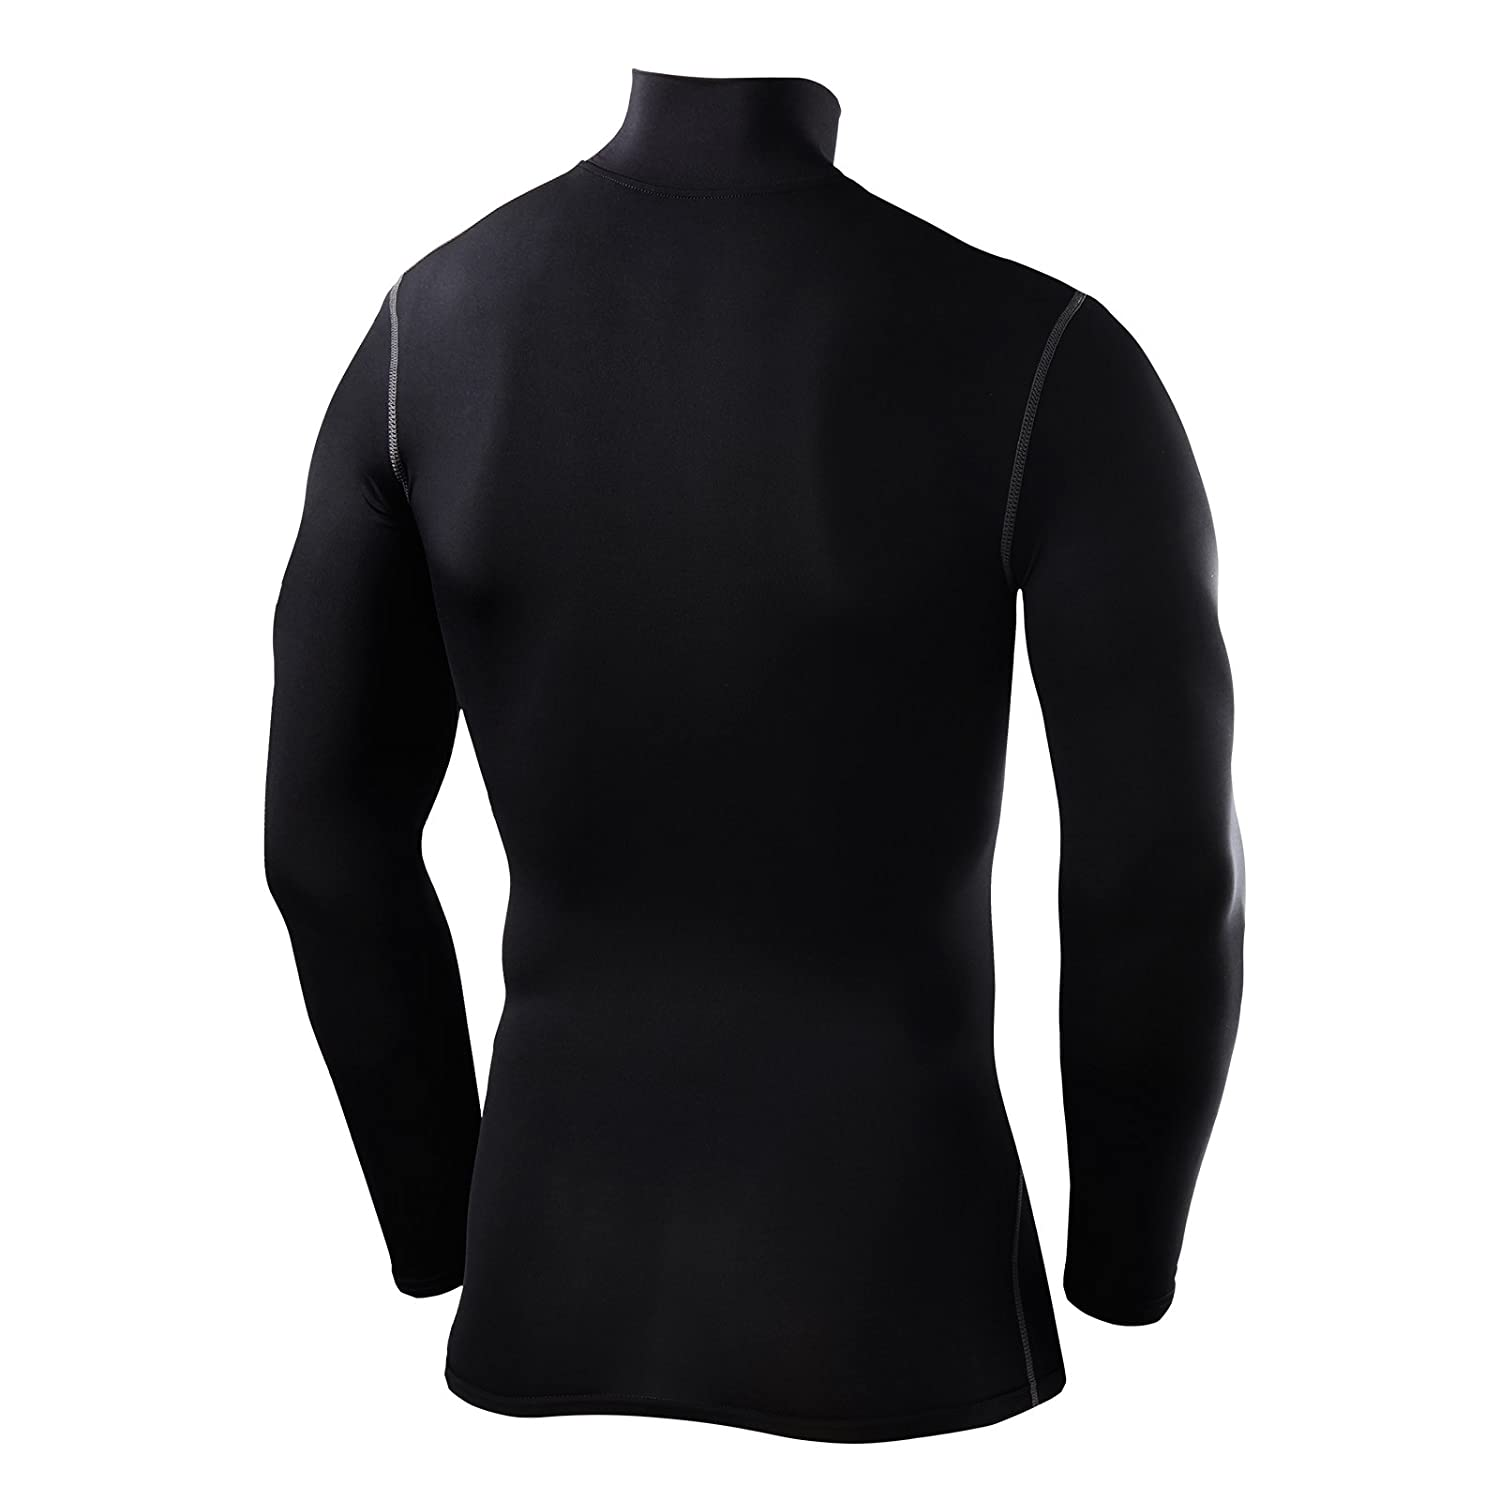 f01835af4c8 Amazon.com  PowerLayer Men s   Boy s Compression Base Layer Top Long Sleeve  Thermal Underlayer - Mock Neck  Sports   Outdoors